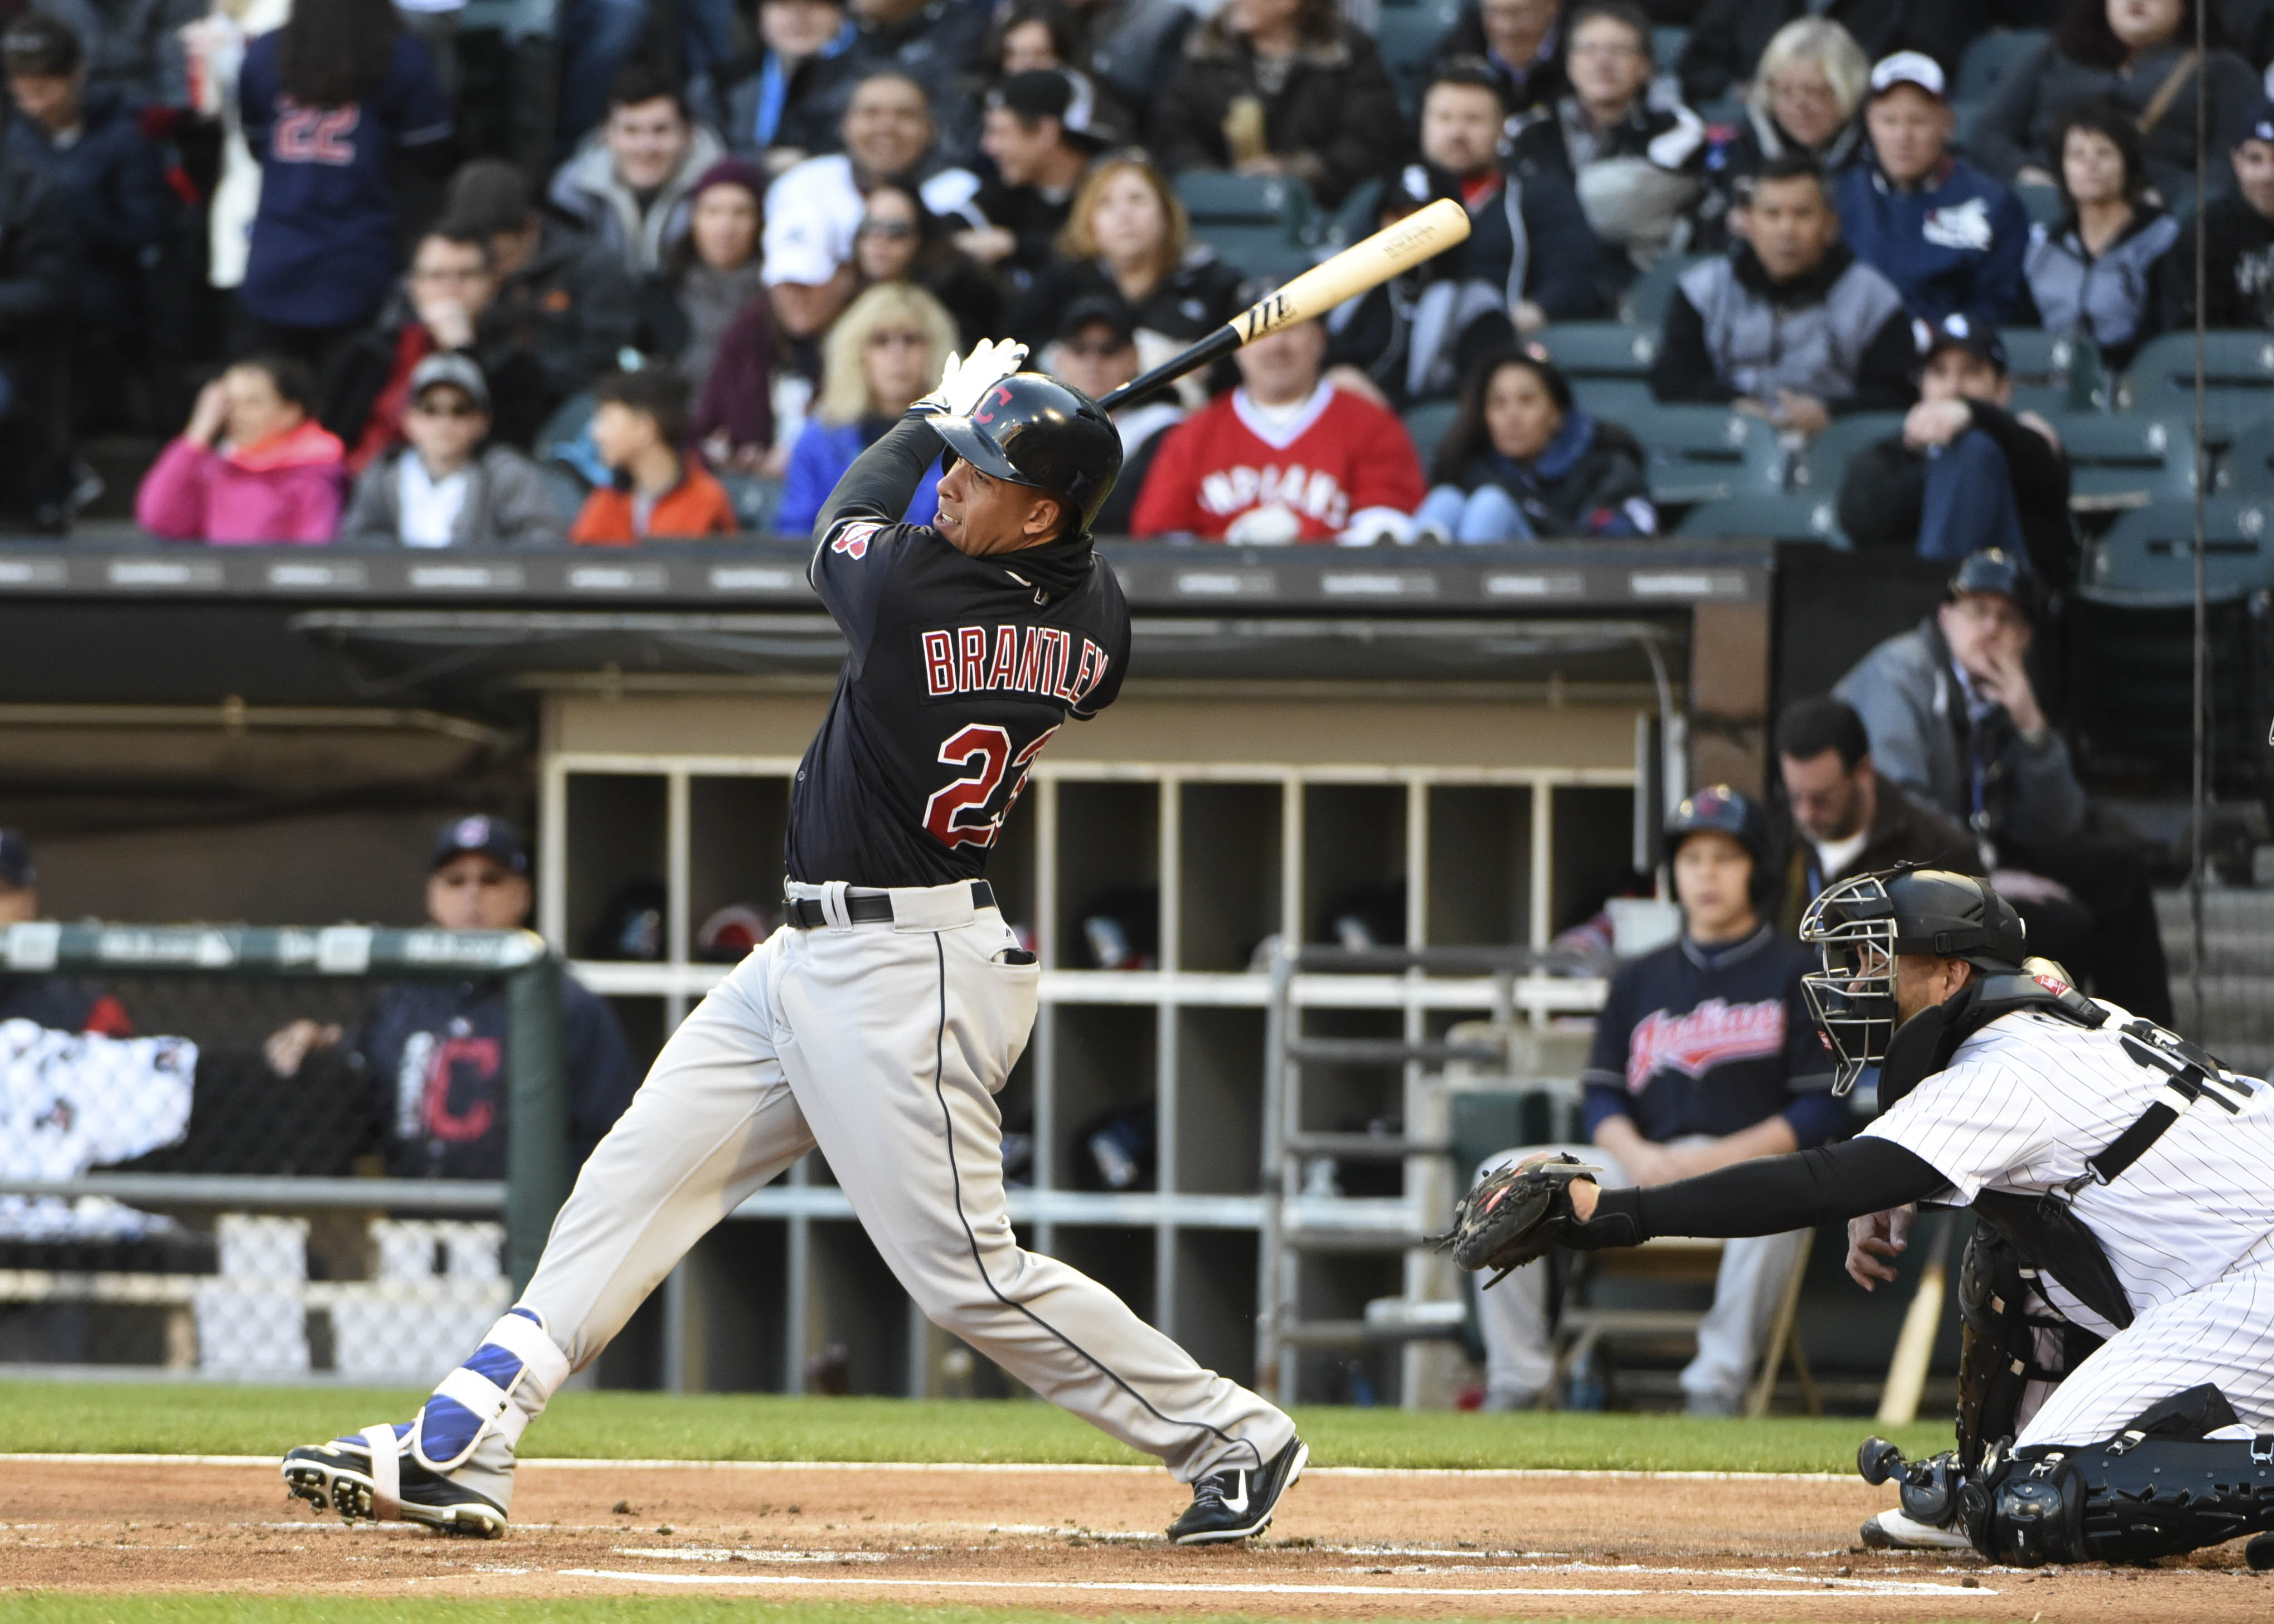 10025798-mlb-cleveland-indians-at-chicago-white-sox